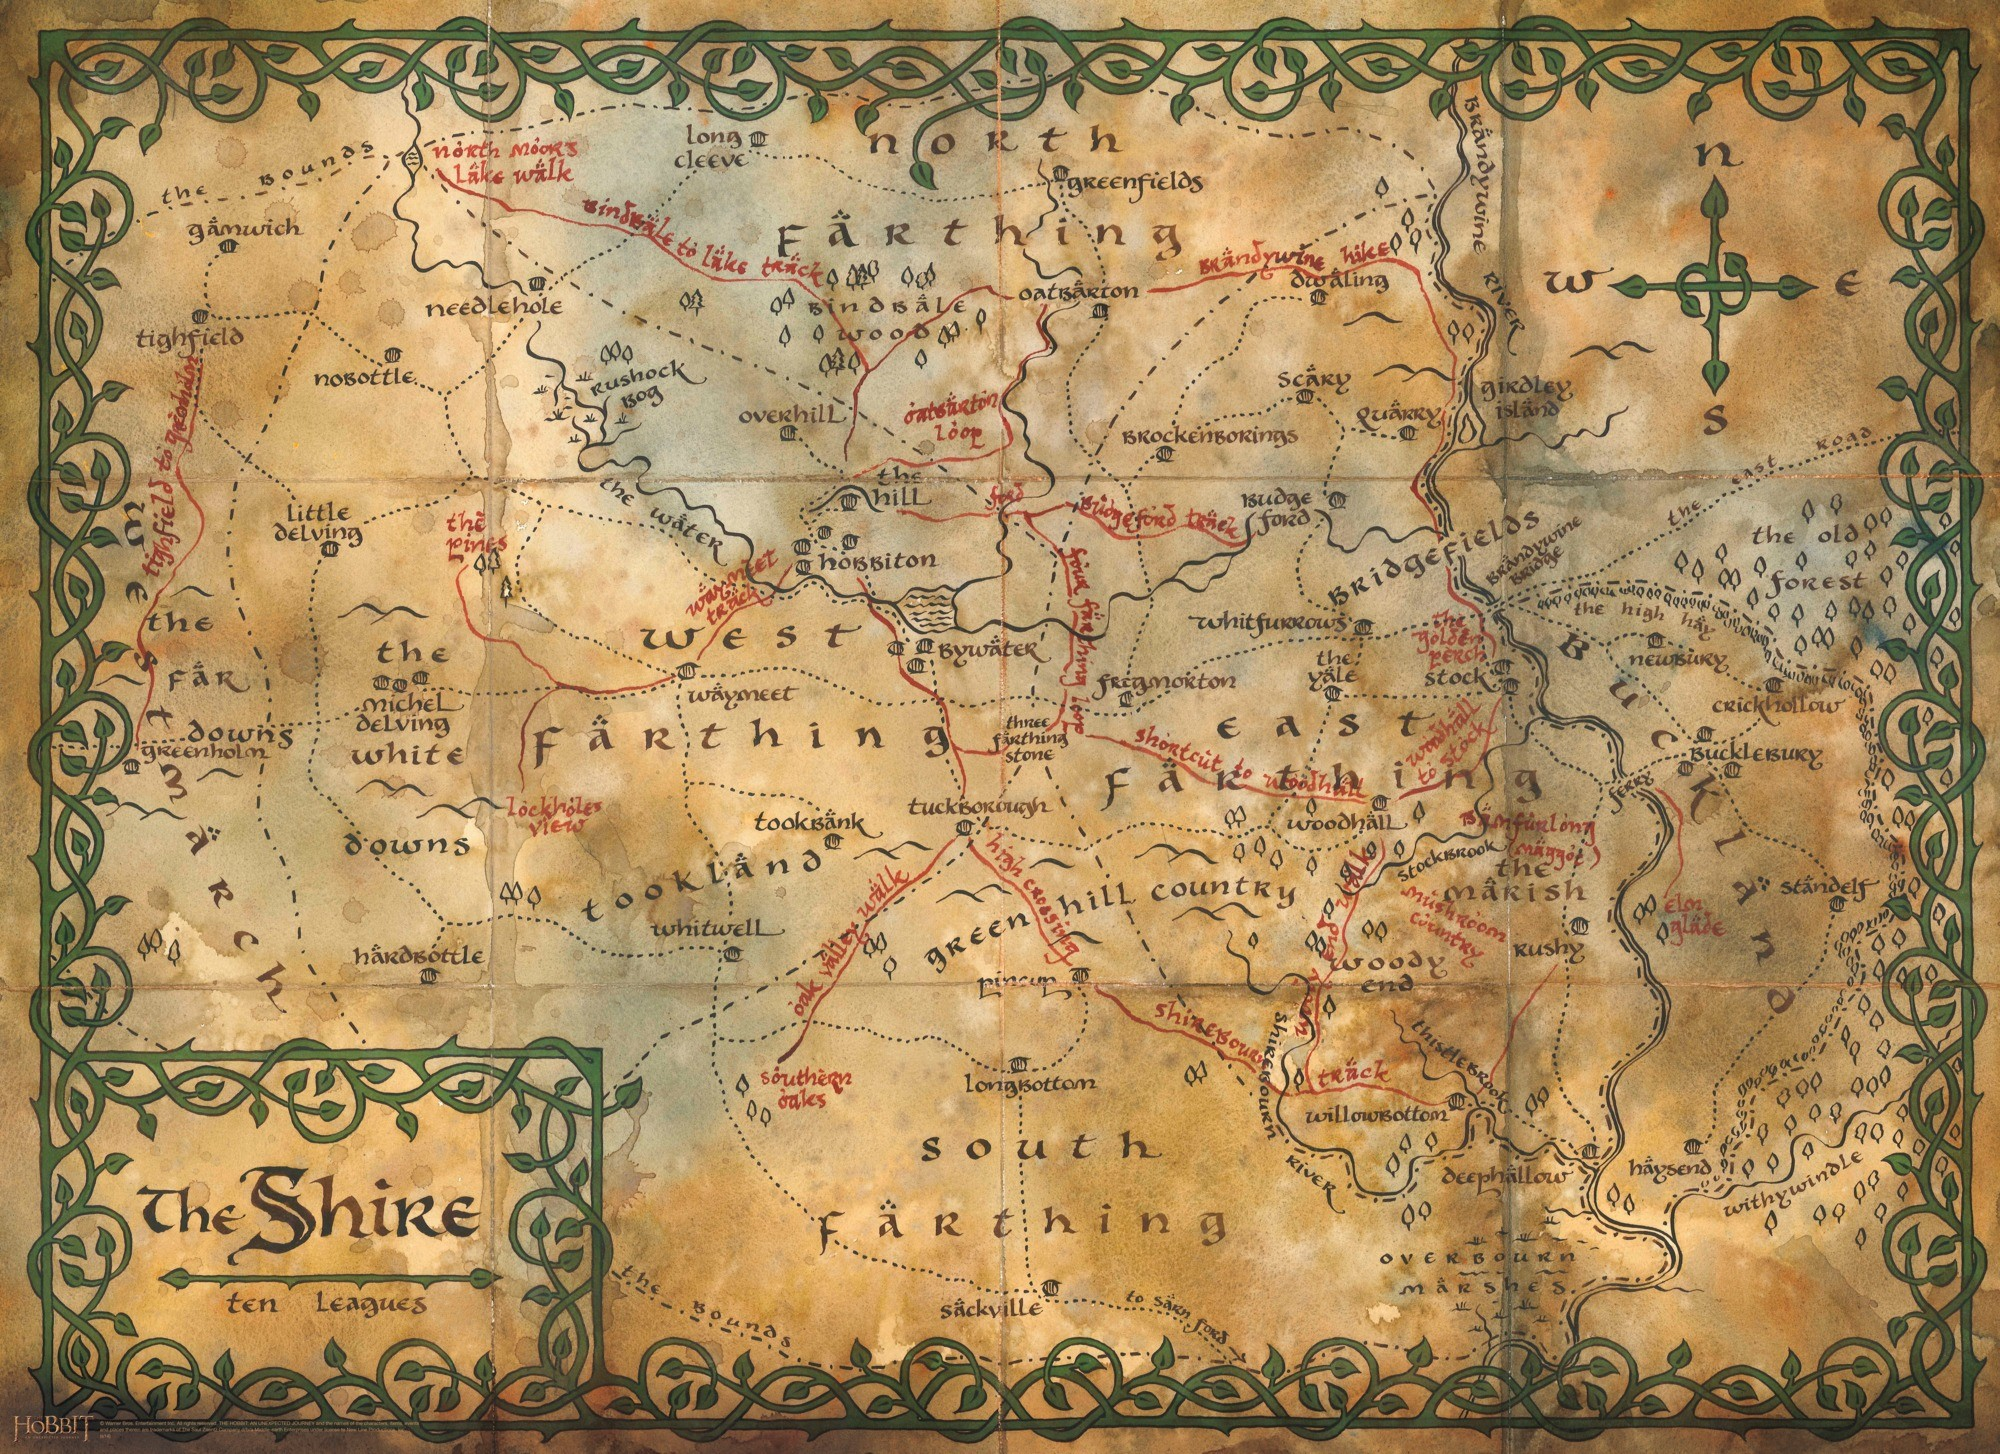 Middle Earth Map Large.Middle Earth Map Wallpaper 48 Images